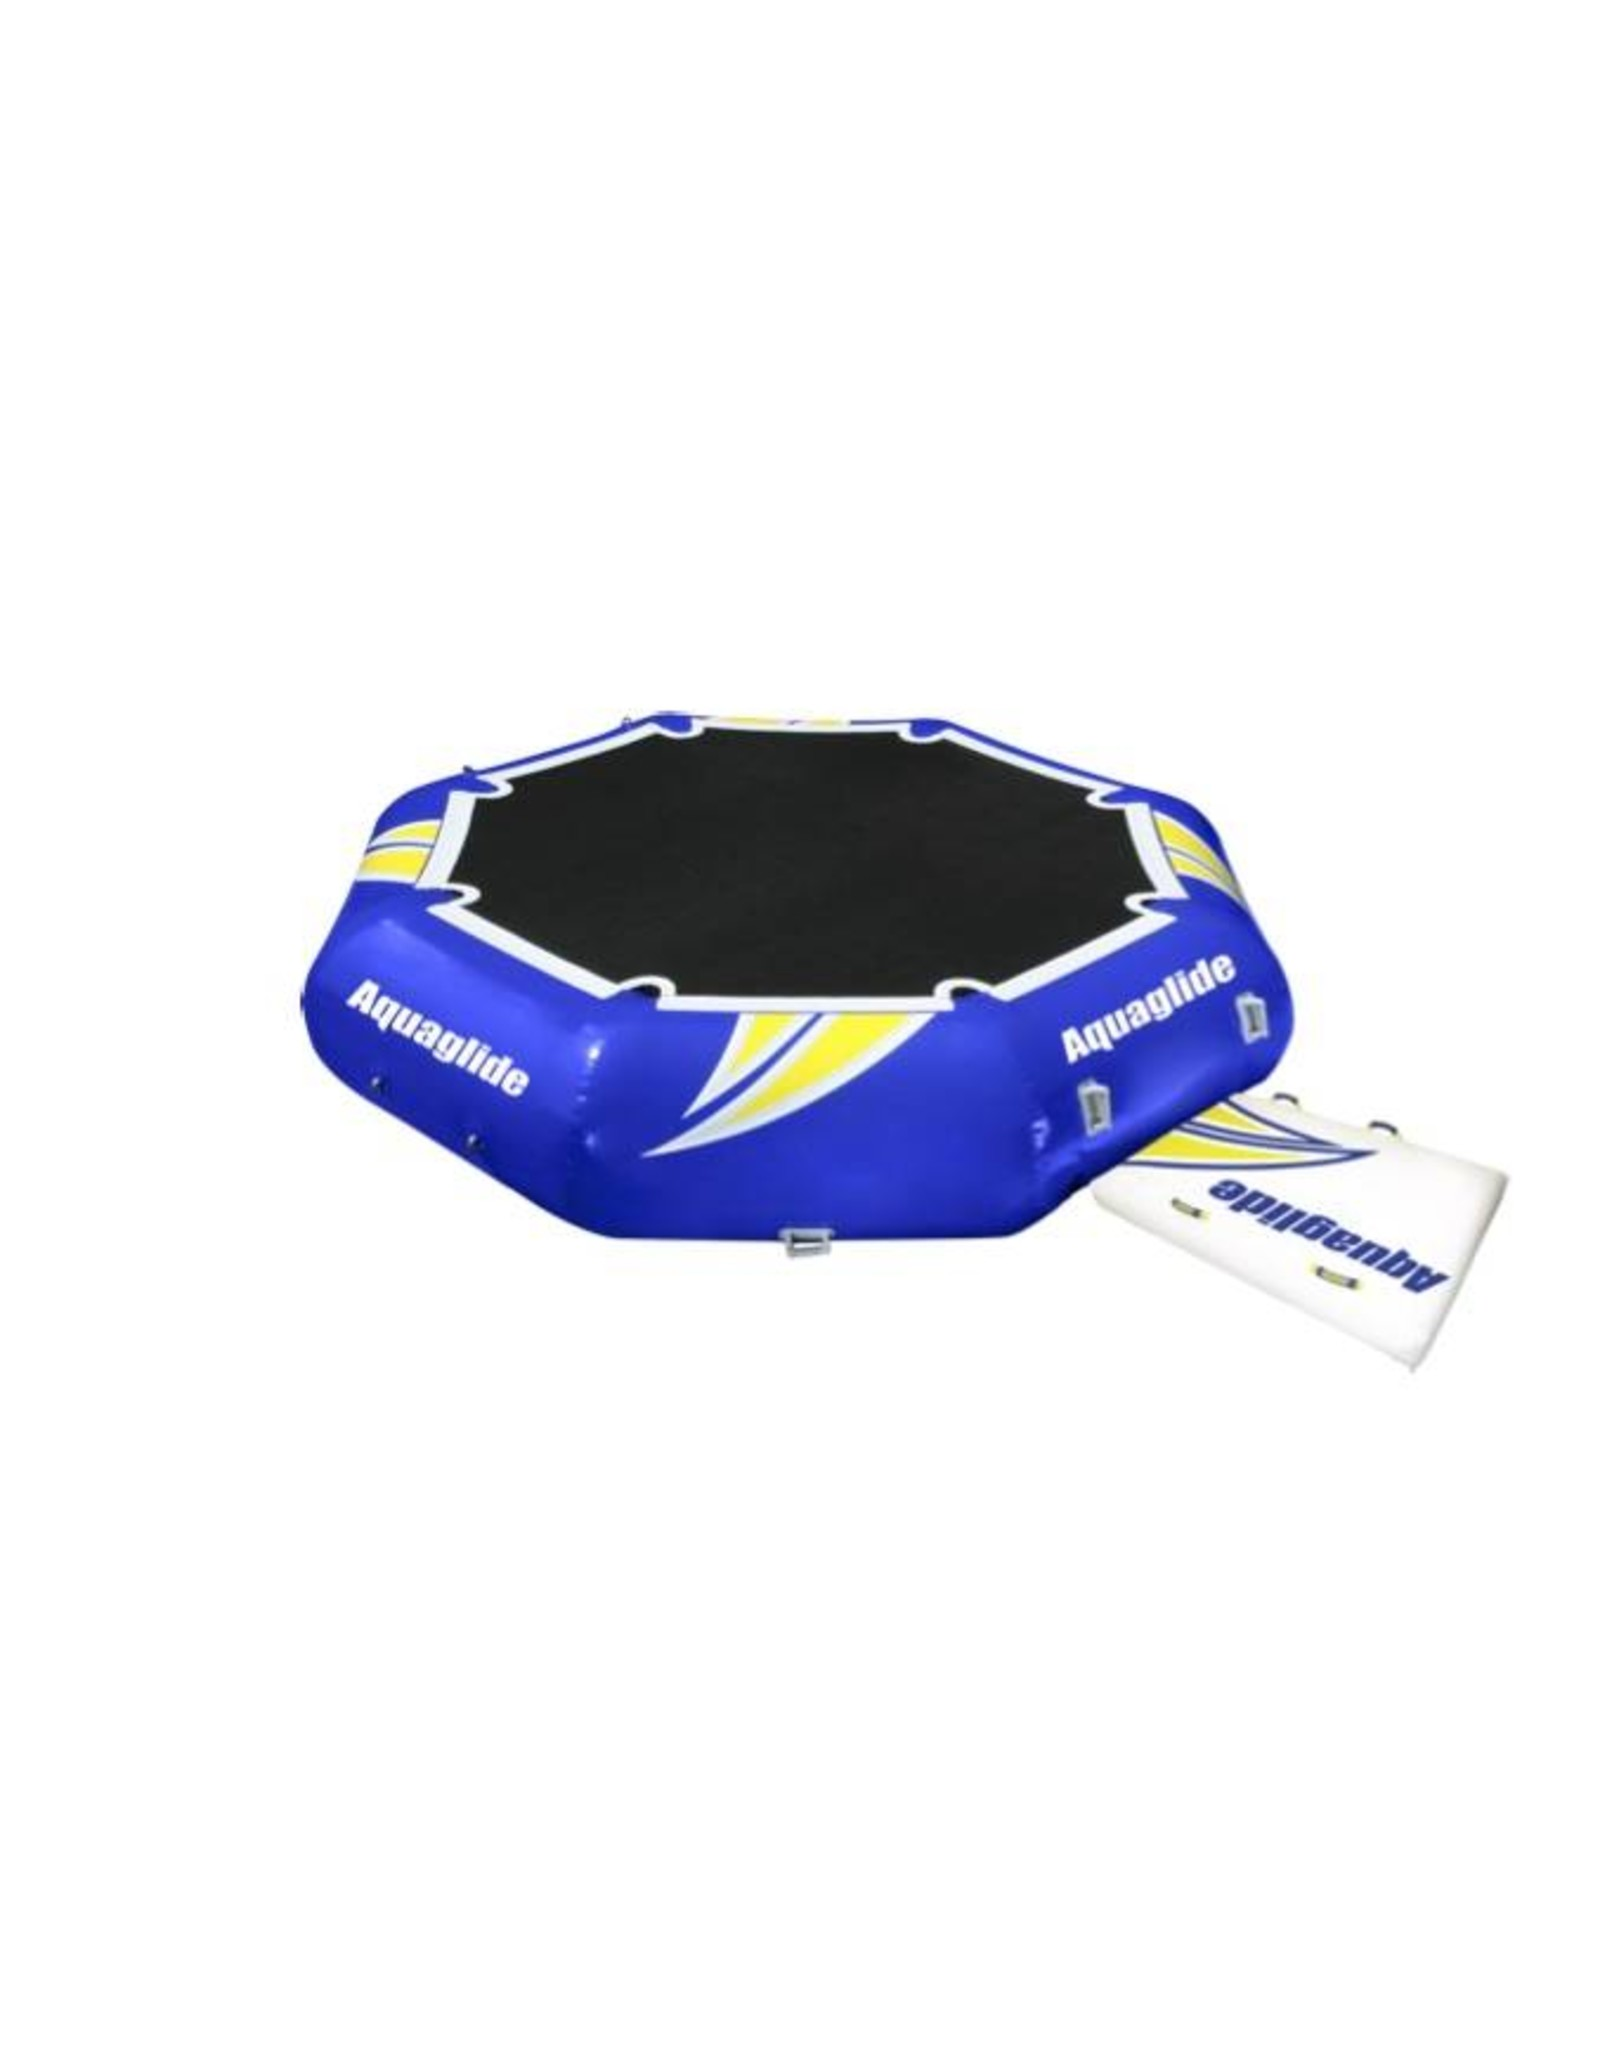 Aquaglide Rebound Bouncer